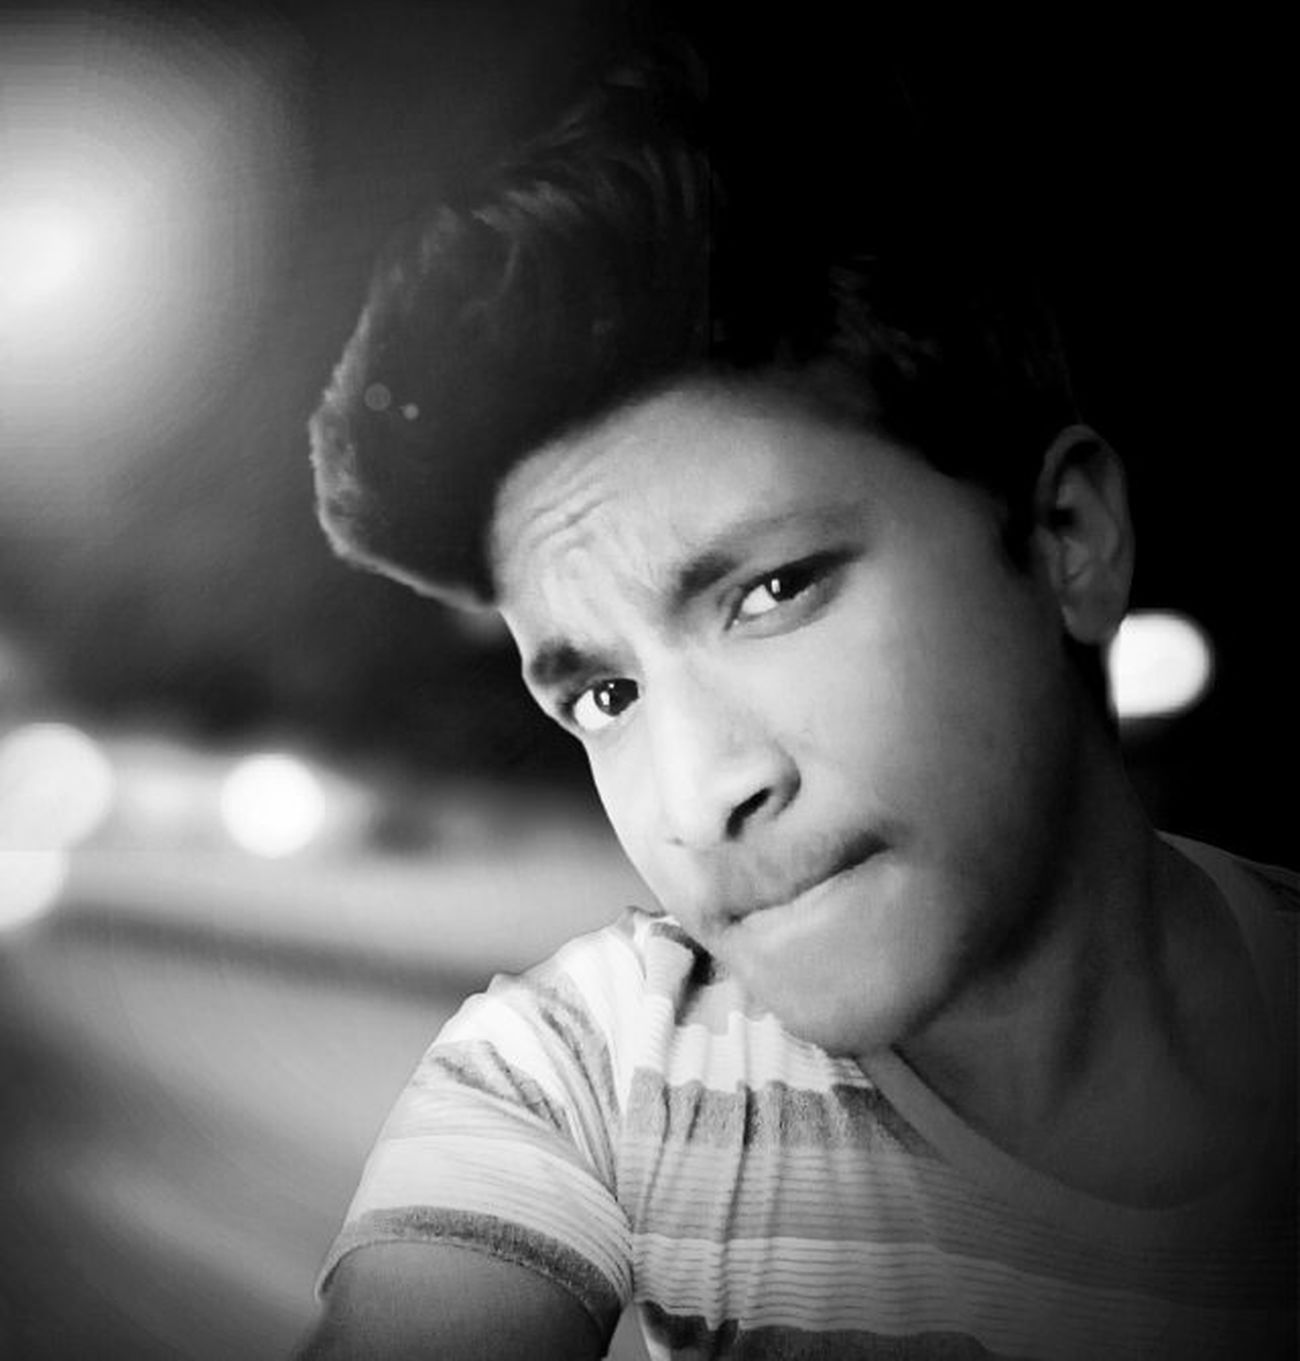 City lights😍Night Citylights Shadow Dark Light Black White Edit Instagram Filter Lux Instaedit Instacool Instalike Instafollow Like4follow Like4like L4l Awesome Selfie Picoftheday Bestoftheday Bestone Bokeh